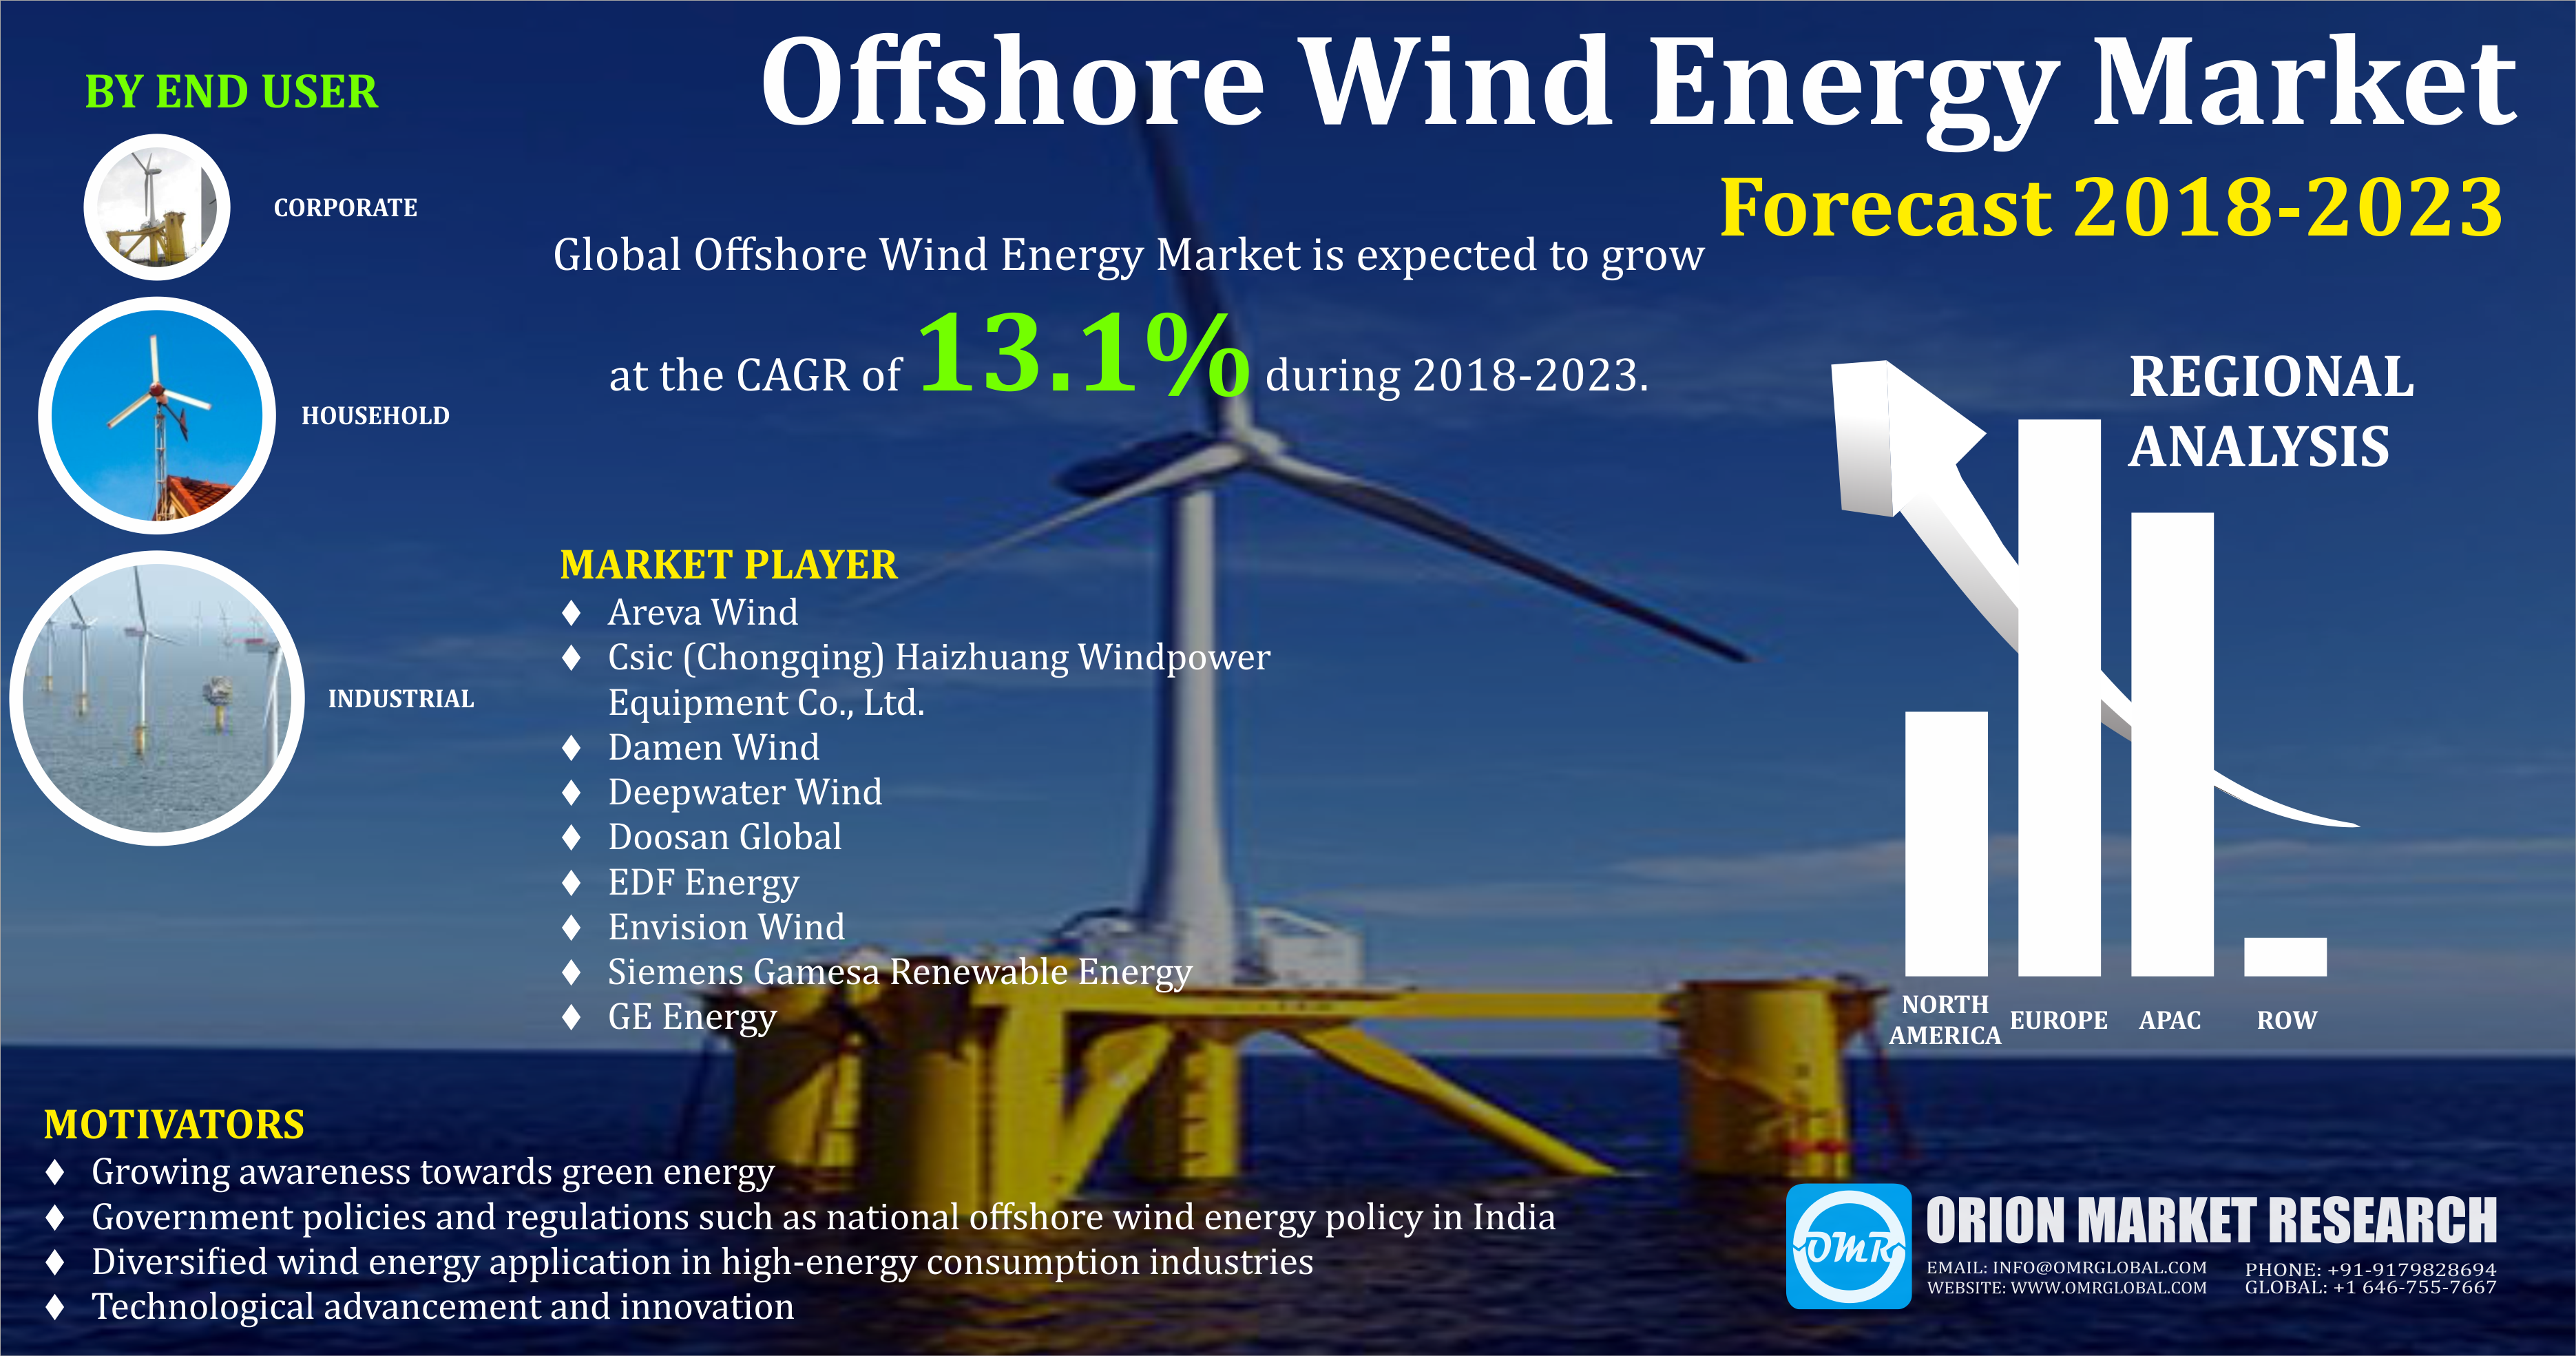 Offshore Wind Energy Market Research and Forecast 2018-2023 | Energy